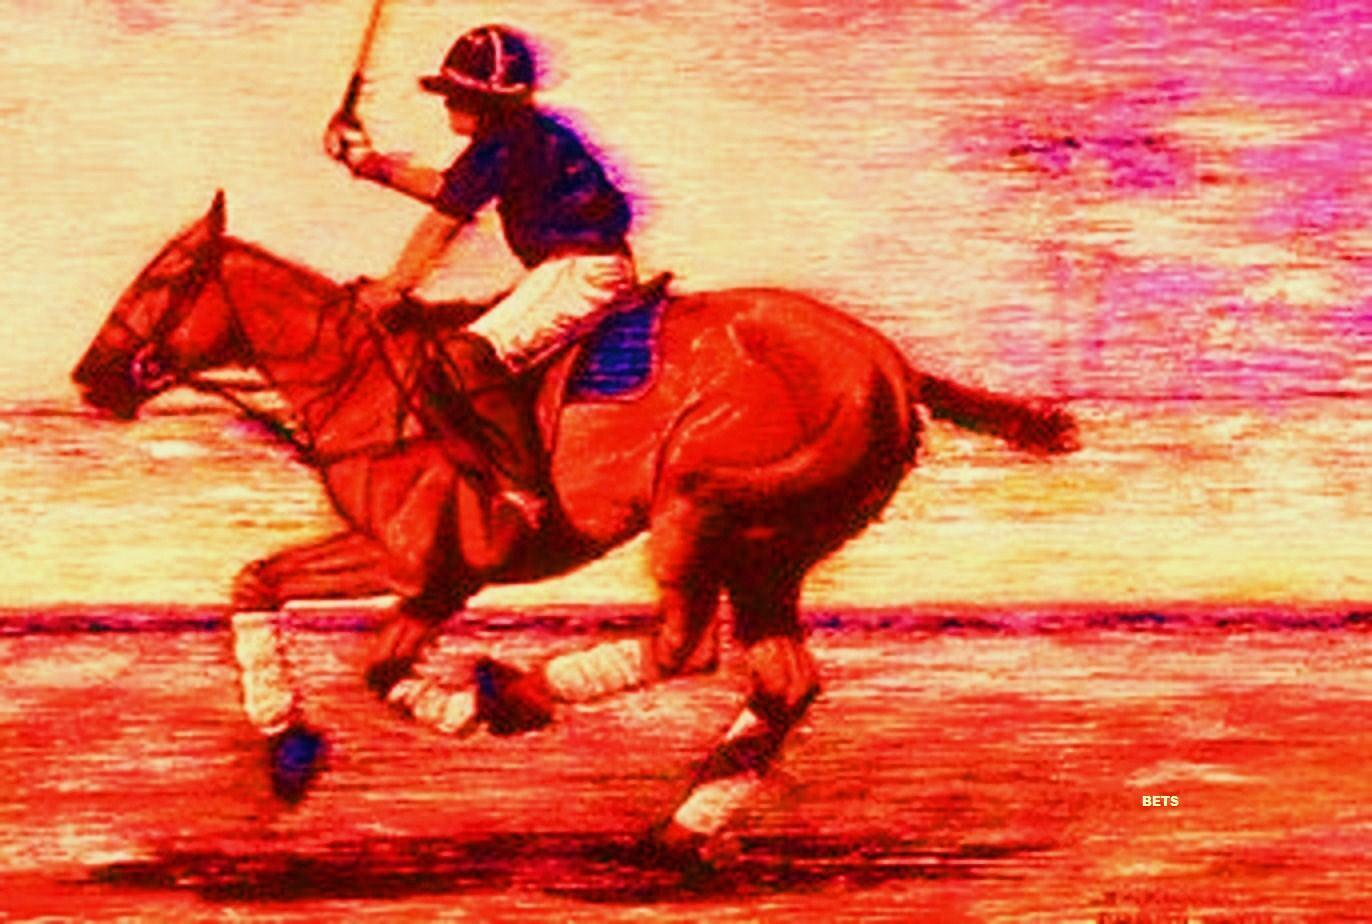 Giclee HORSE PRINT  POLO DOWN THE FIELD artist BETS 6 ColoreeeS print Dimensione 14 X 19